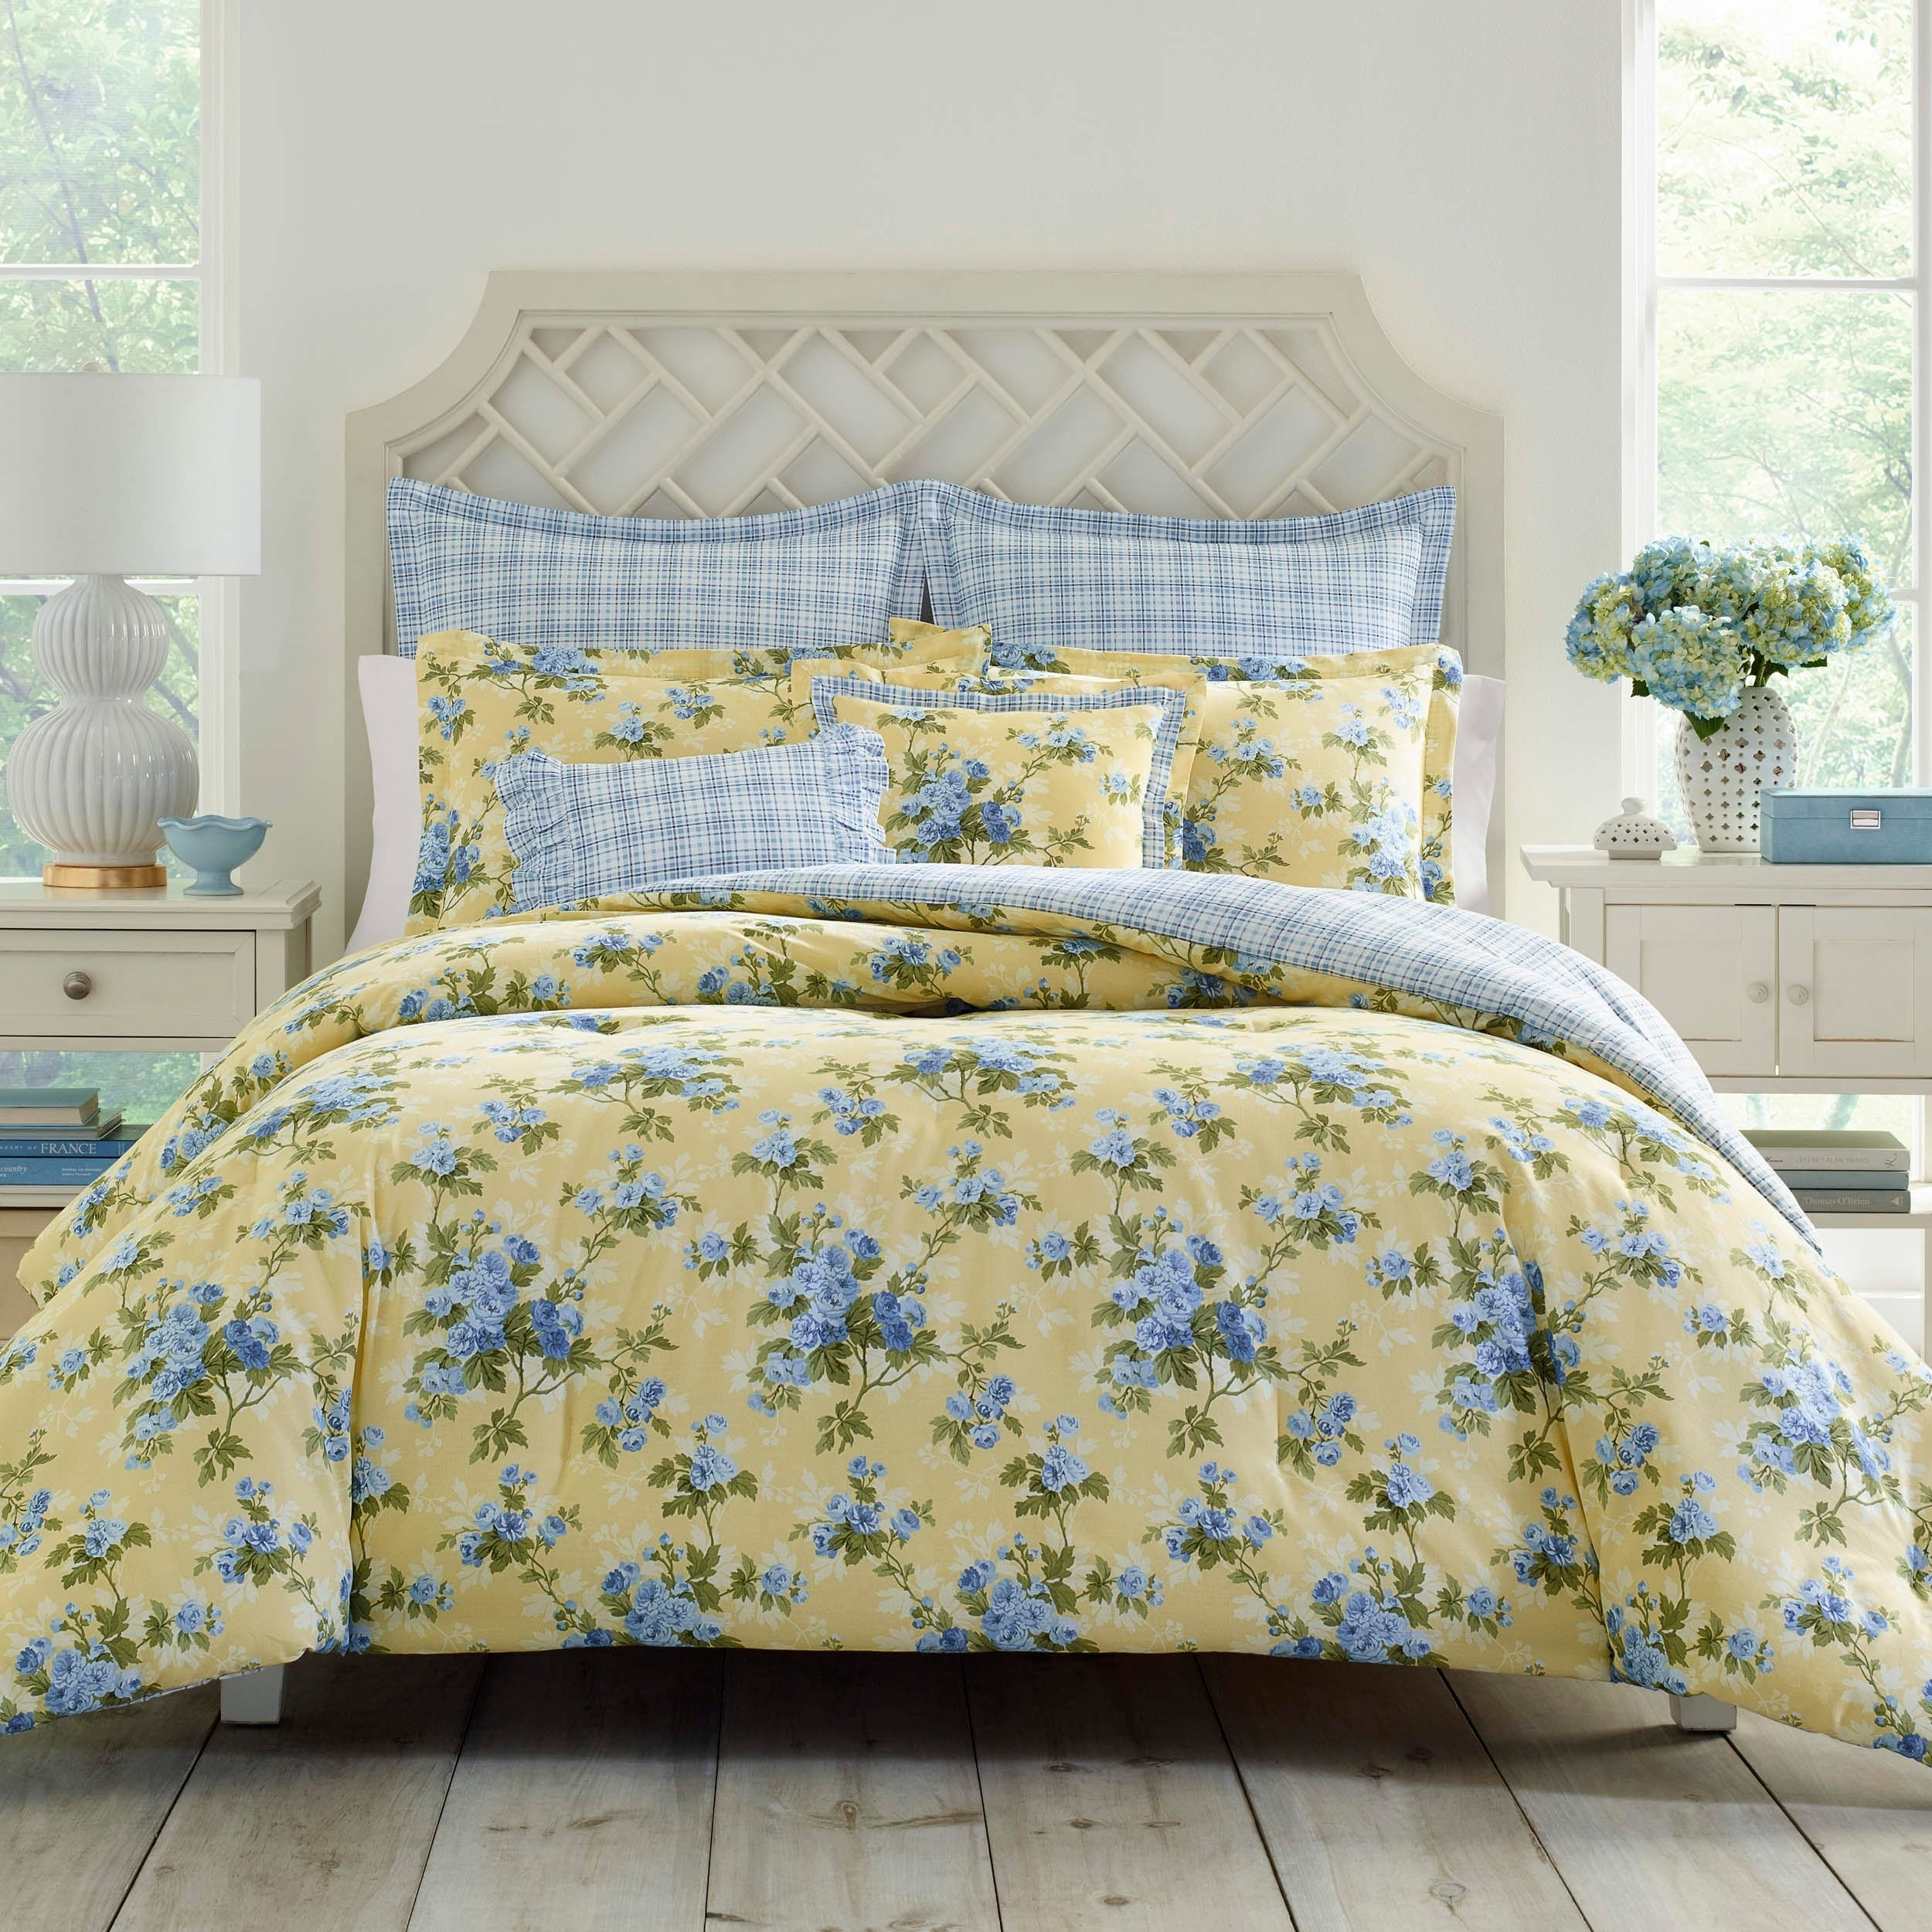 Shop Laura Ashley Cassidy Comforter Set On Sale Free Shipping Inside Flats Jeraldine Navy 40 Today 20978517